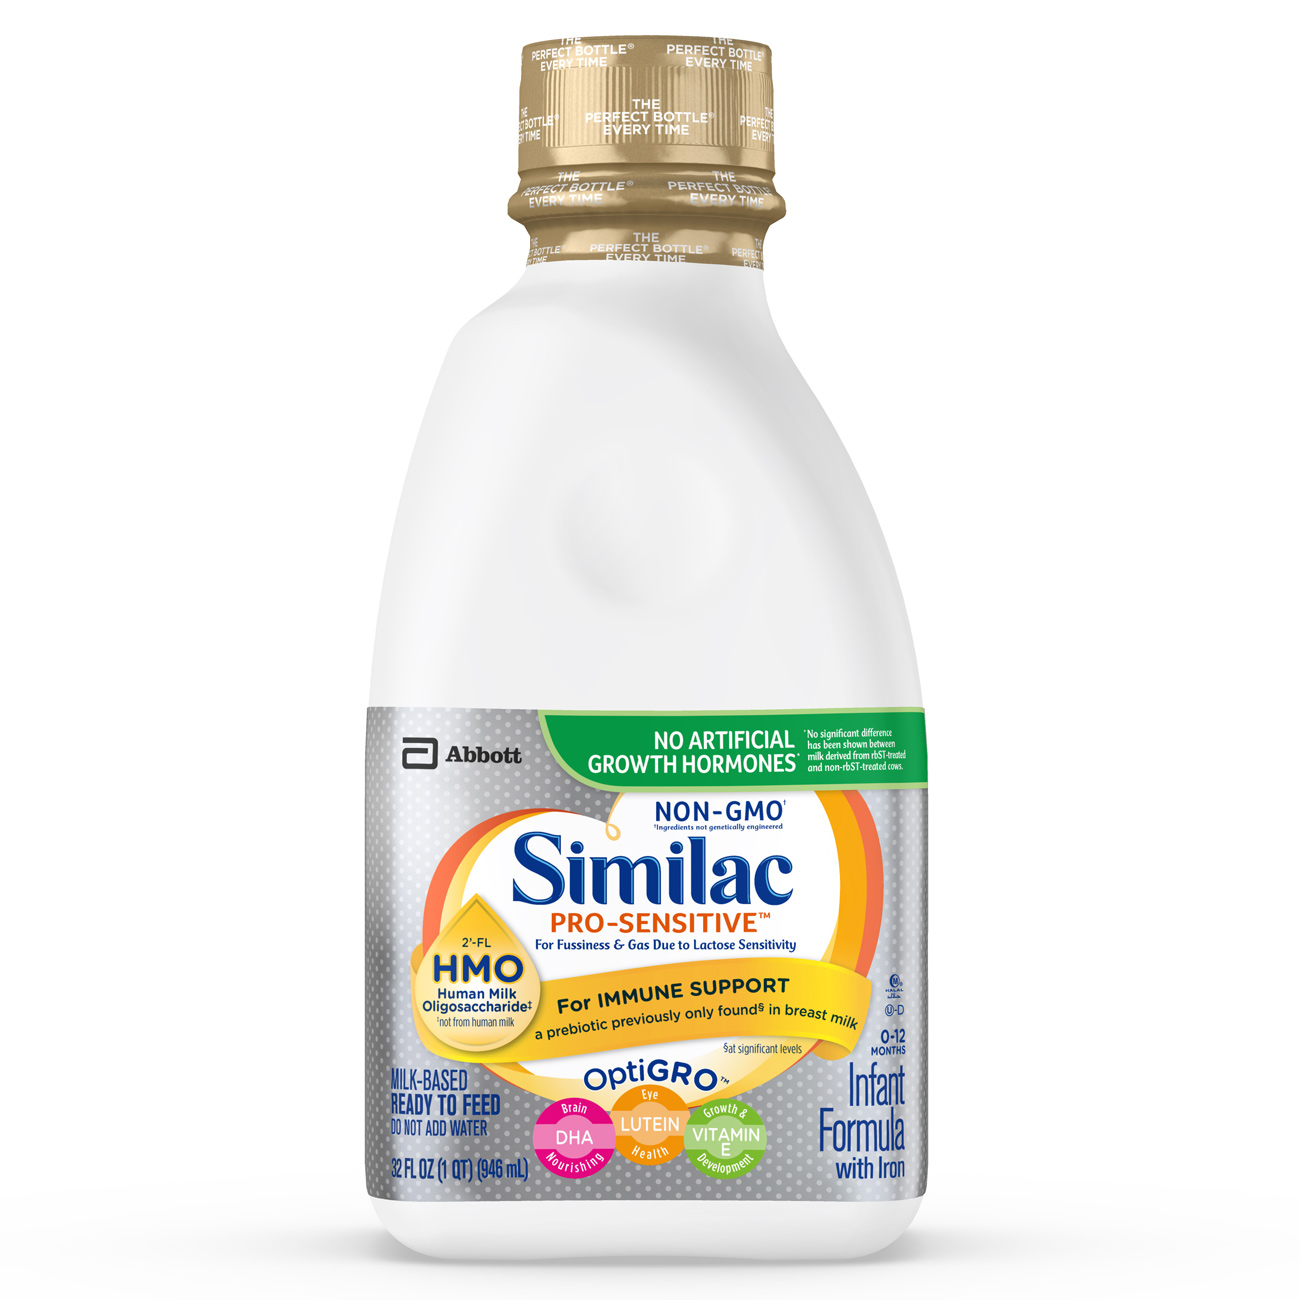 (3 pack) Similac Pro-Sensitive Infant Formula with 2'-FL Human Milk Oligosaccharide (HMO) for Immune Support, Ready to Feed, 32 fl oz